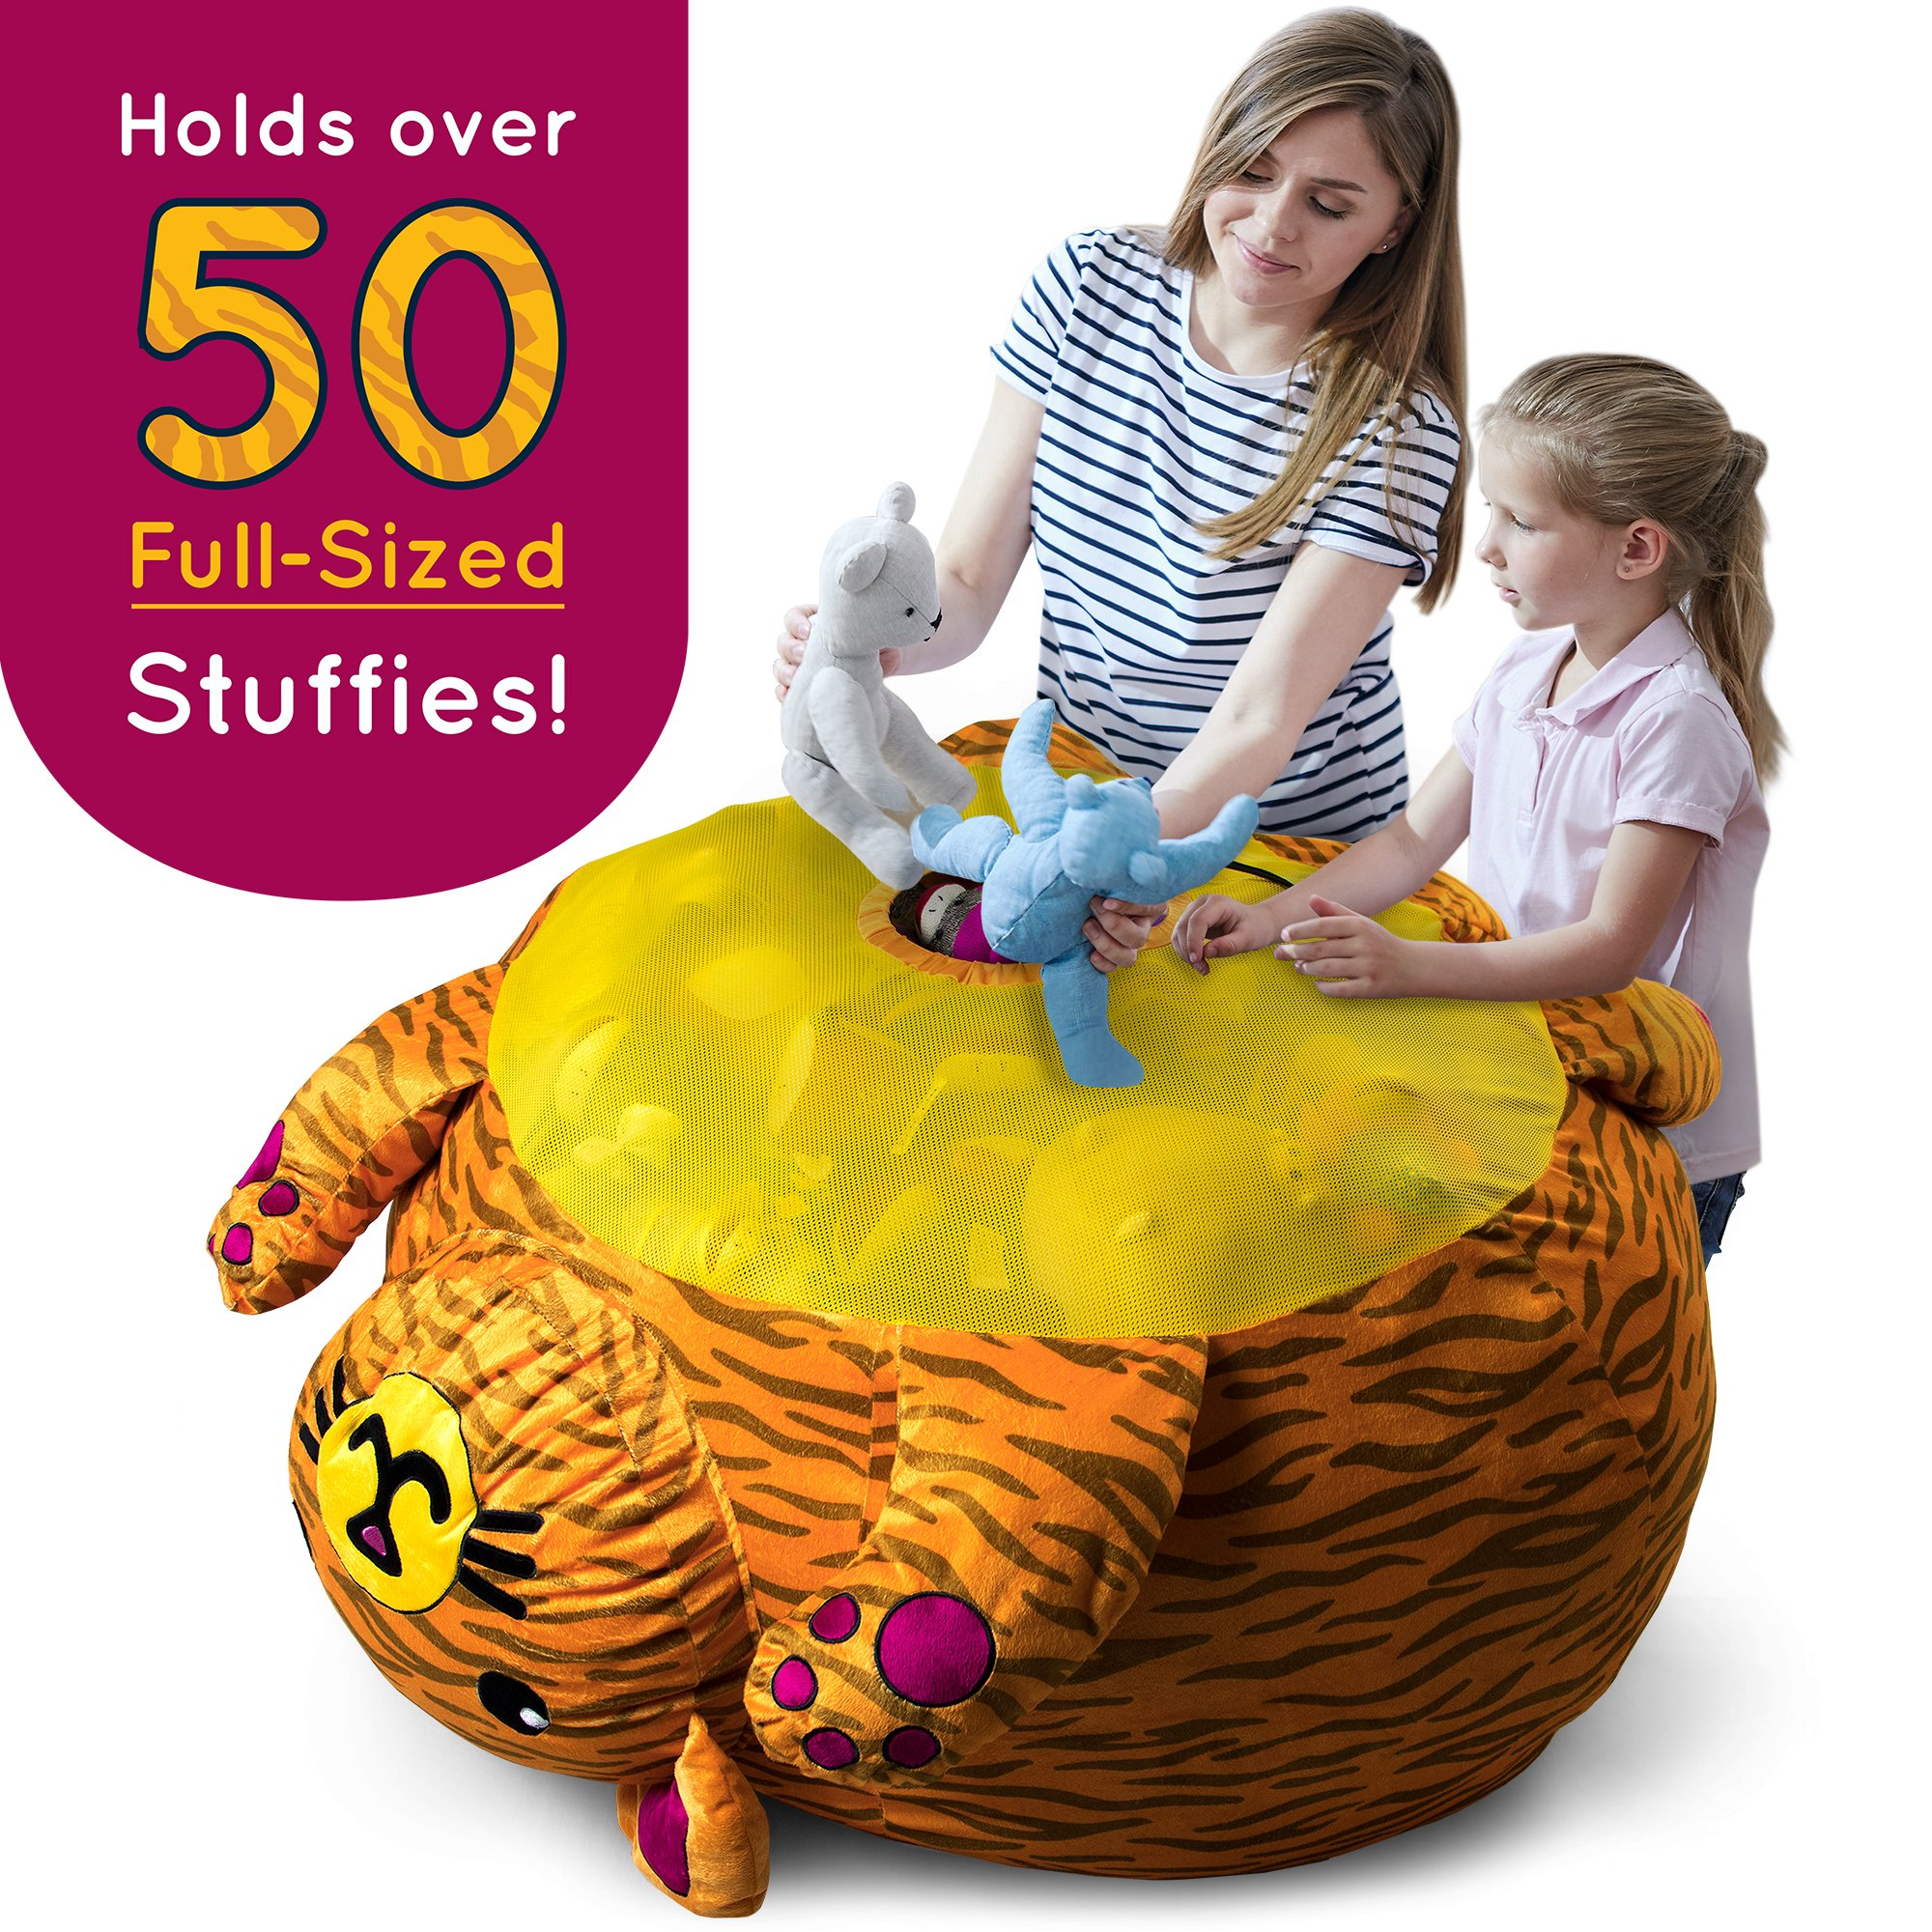 Stuffums Bean Bag Chair and Stuffed Animal Storage - 3-foot Orange Tabby Cat Pouf with Breathable Mesh Bottom, Holds Over 50 Plushies! Great for Bedrooms, Playrooms, & Dorms by Stuffums